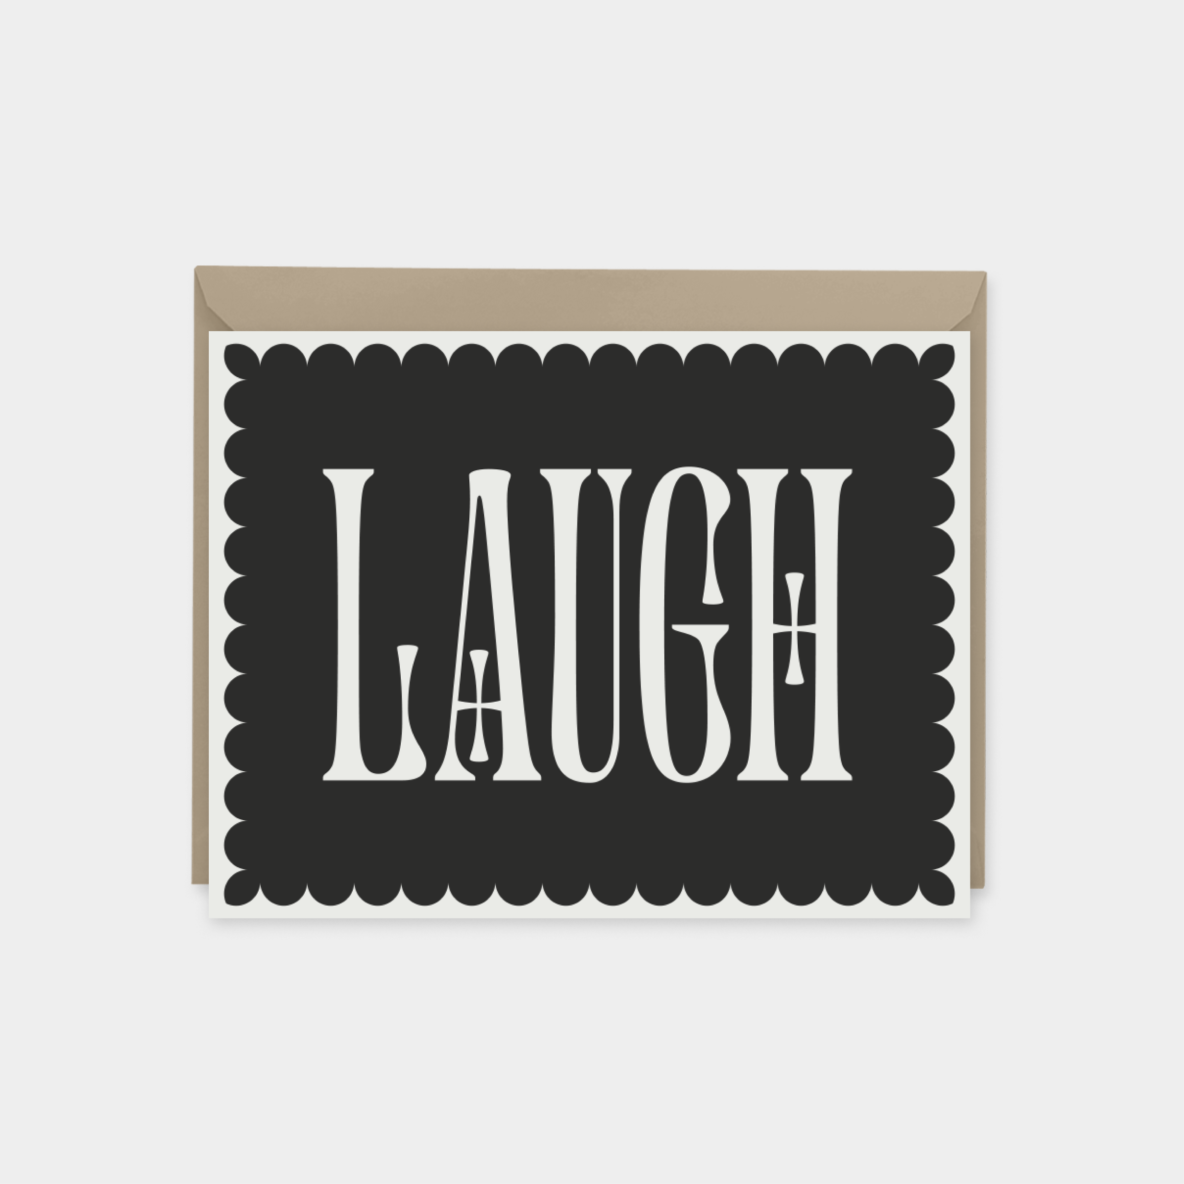 laugh - ornate typography card